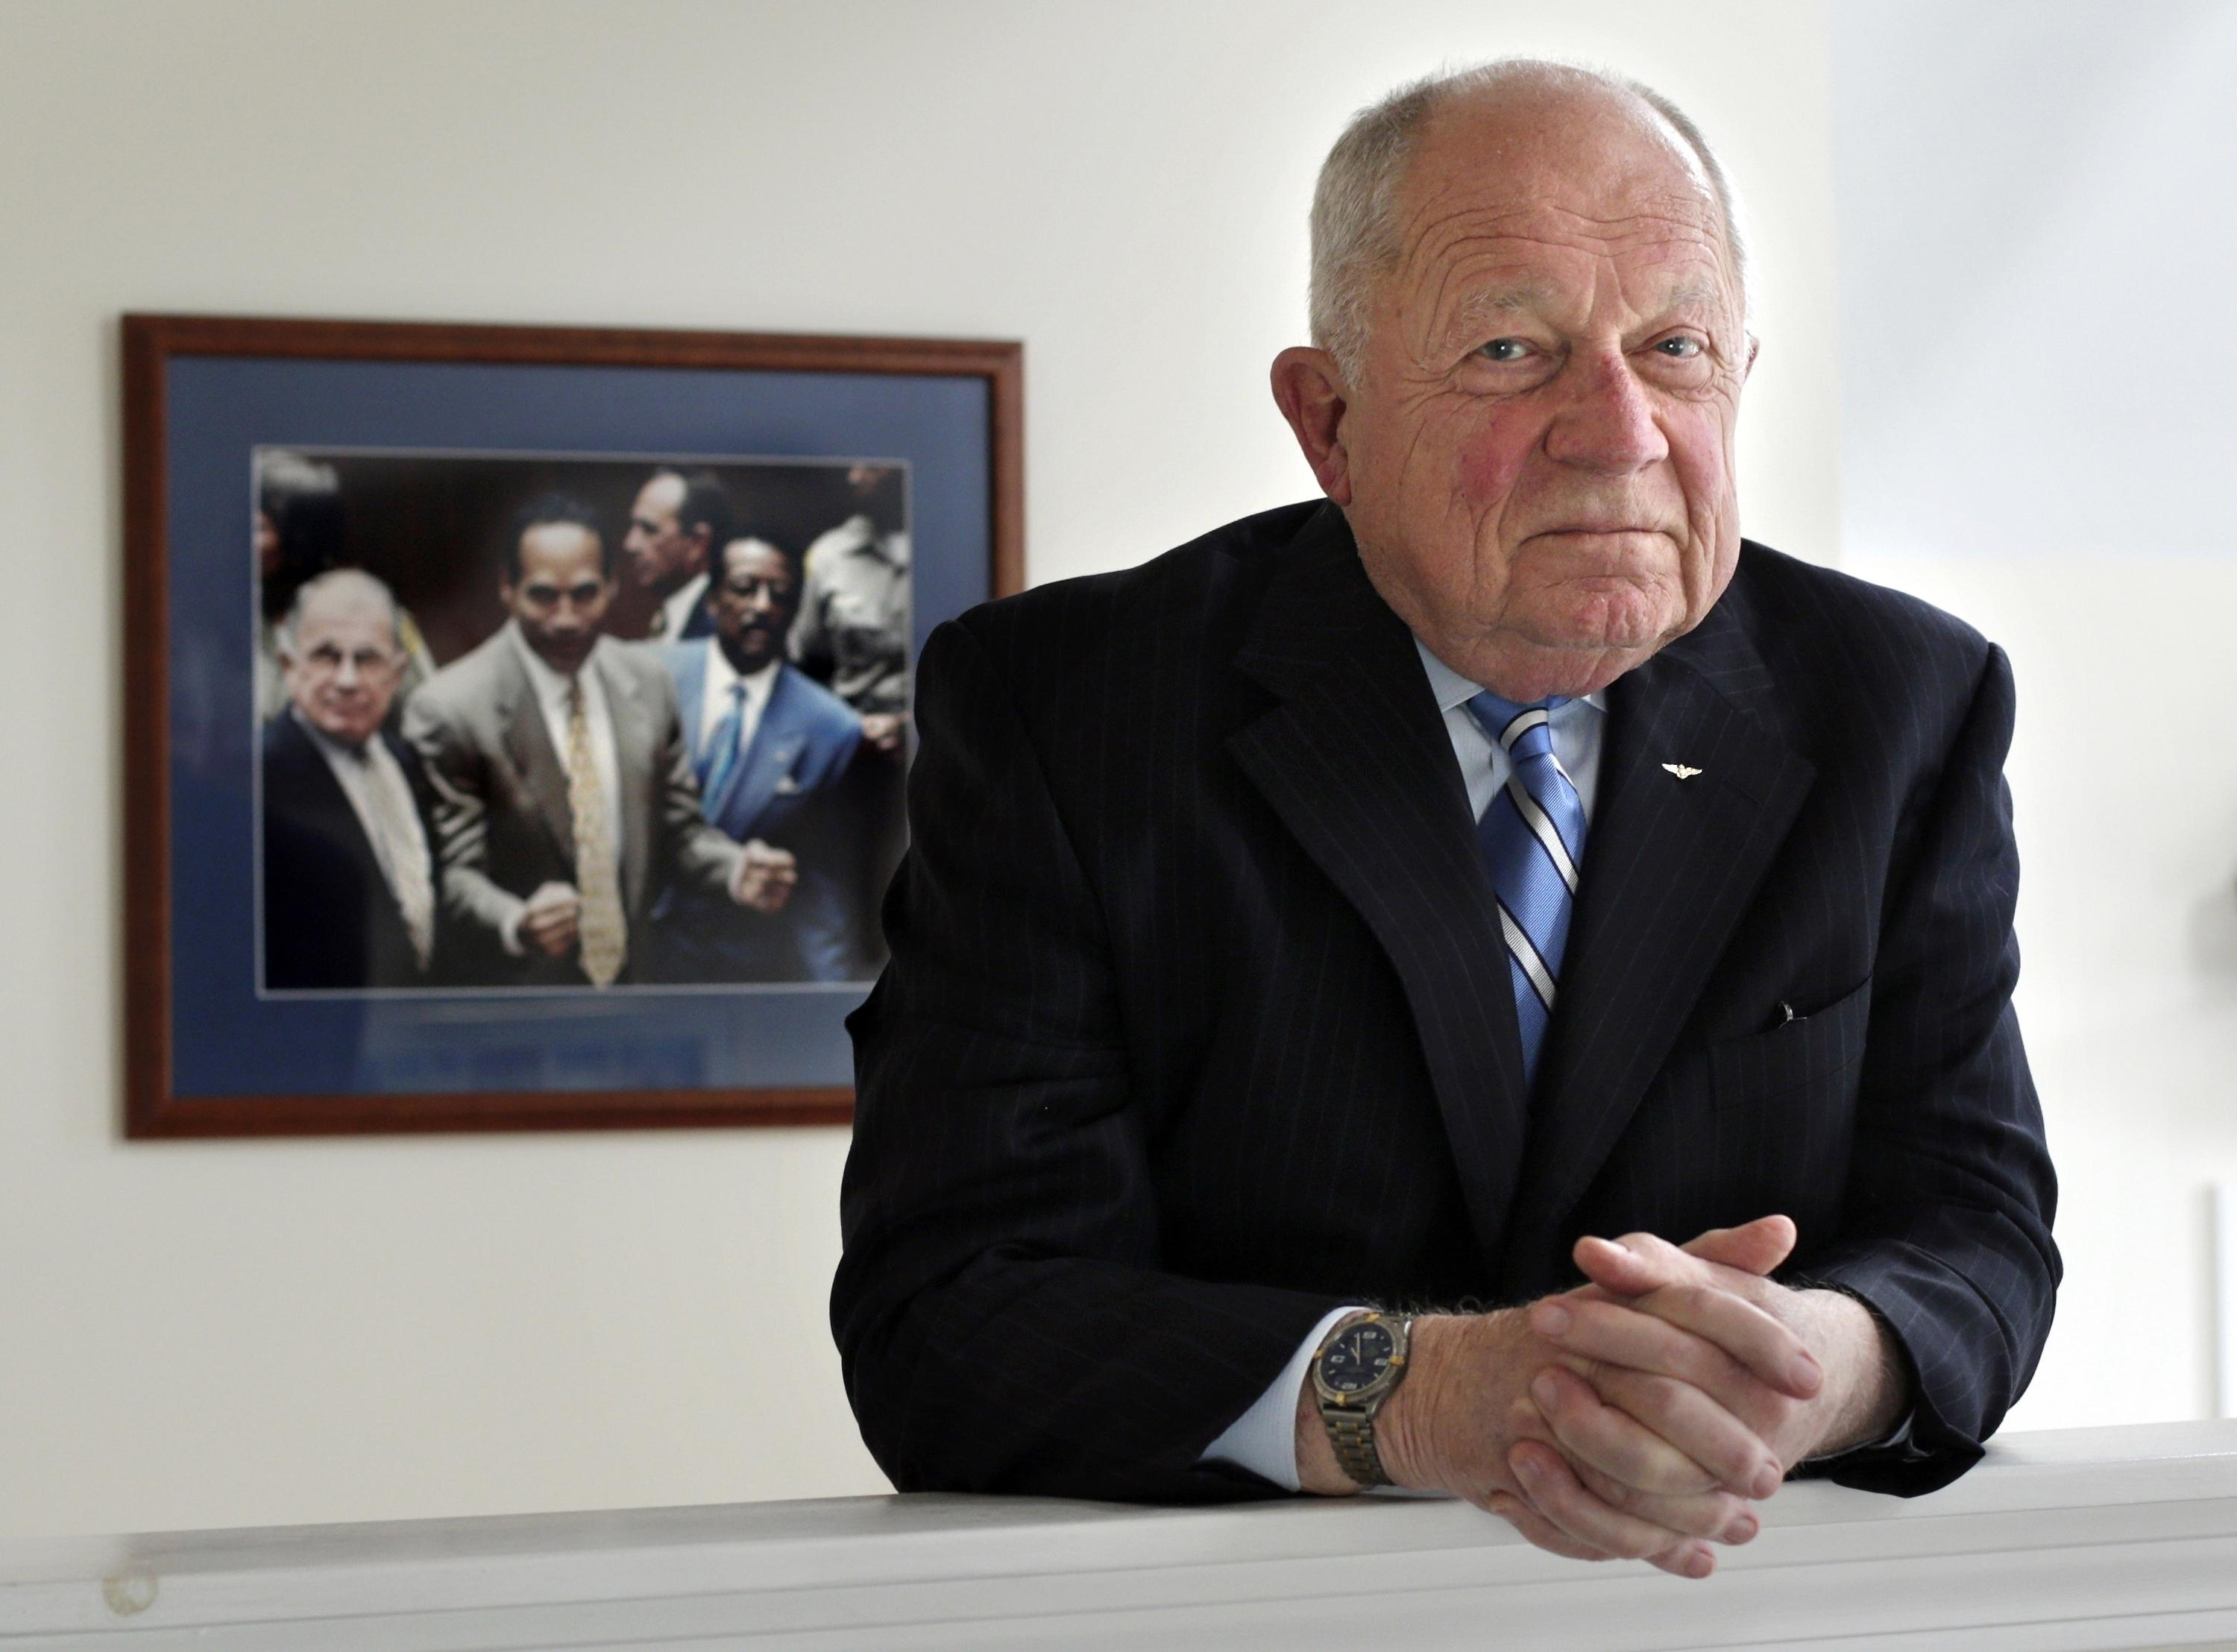 F. Lee Bailey, celebrity attorney best known for defending O.J. Simpson, dead at 87